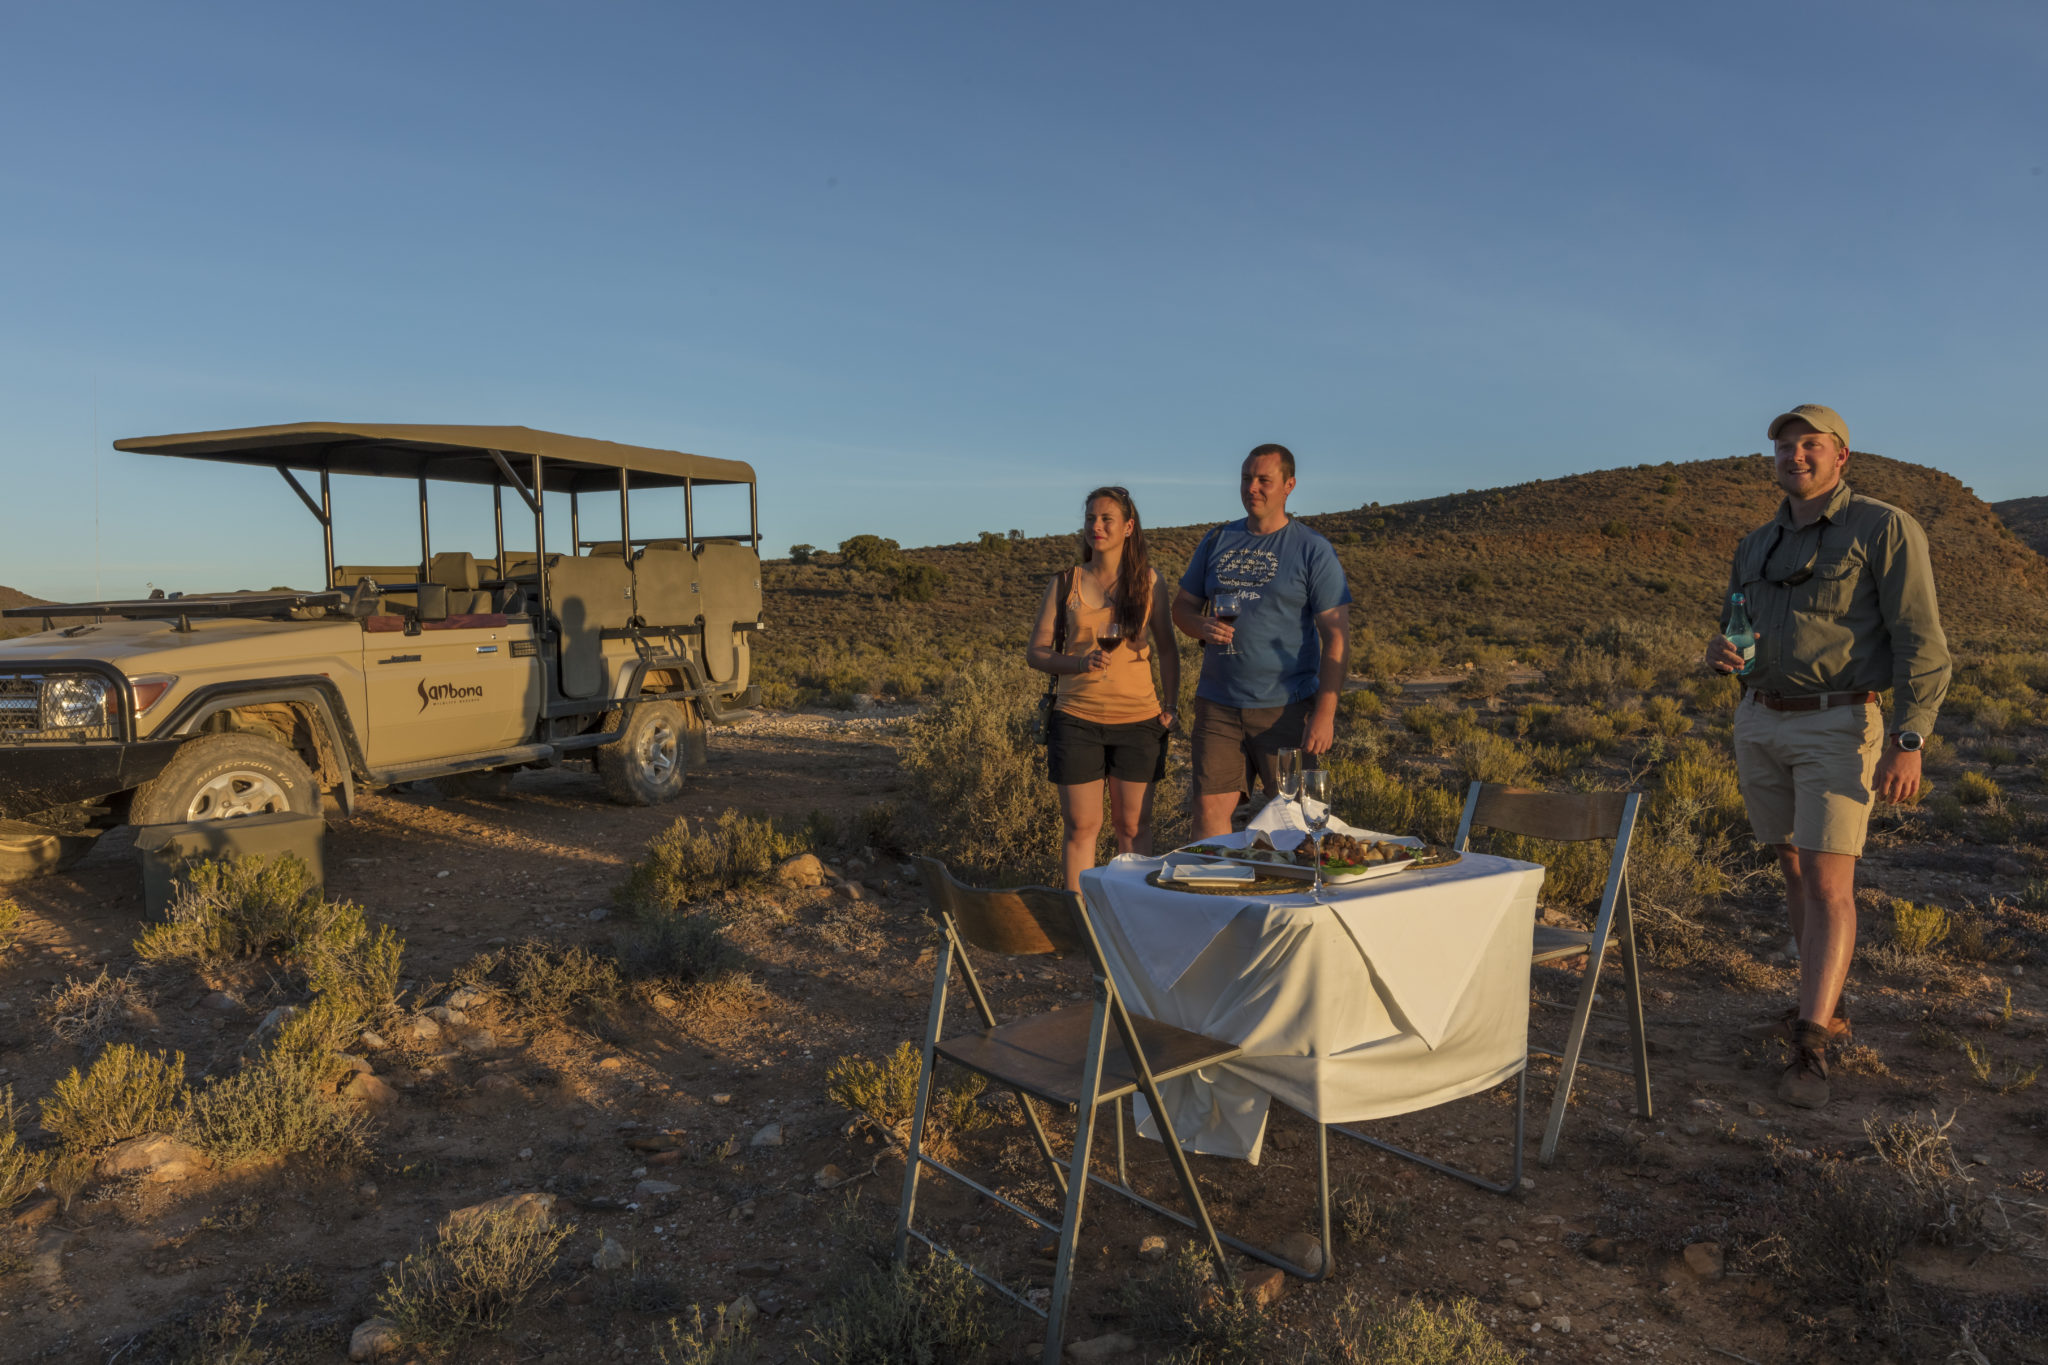 Guest during the 3 day luxury safari